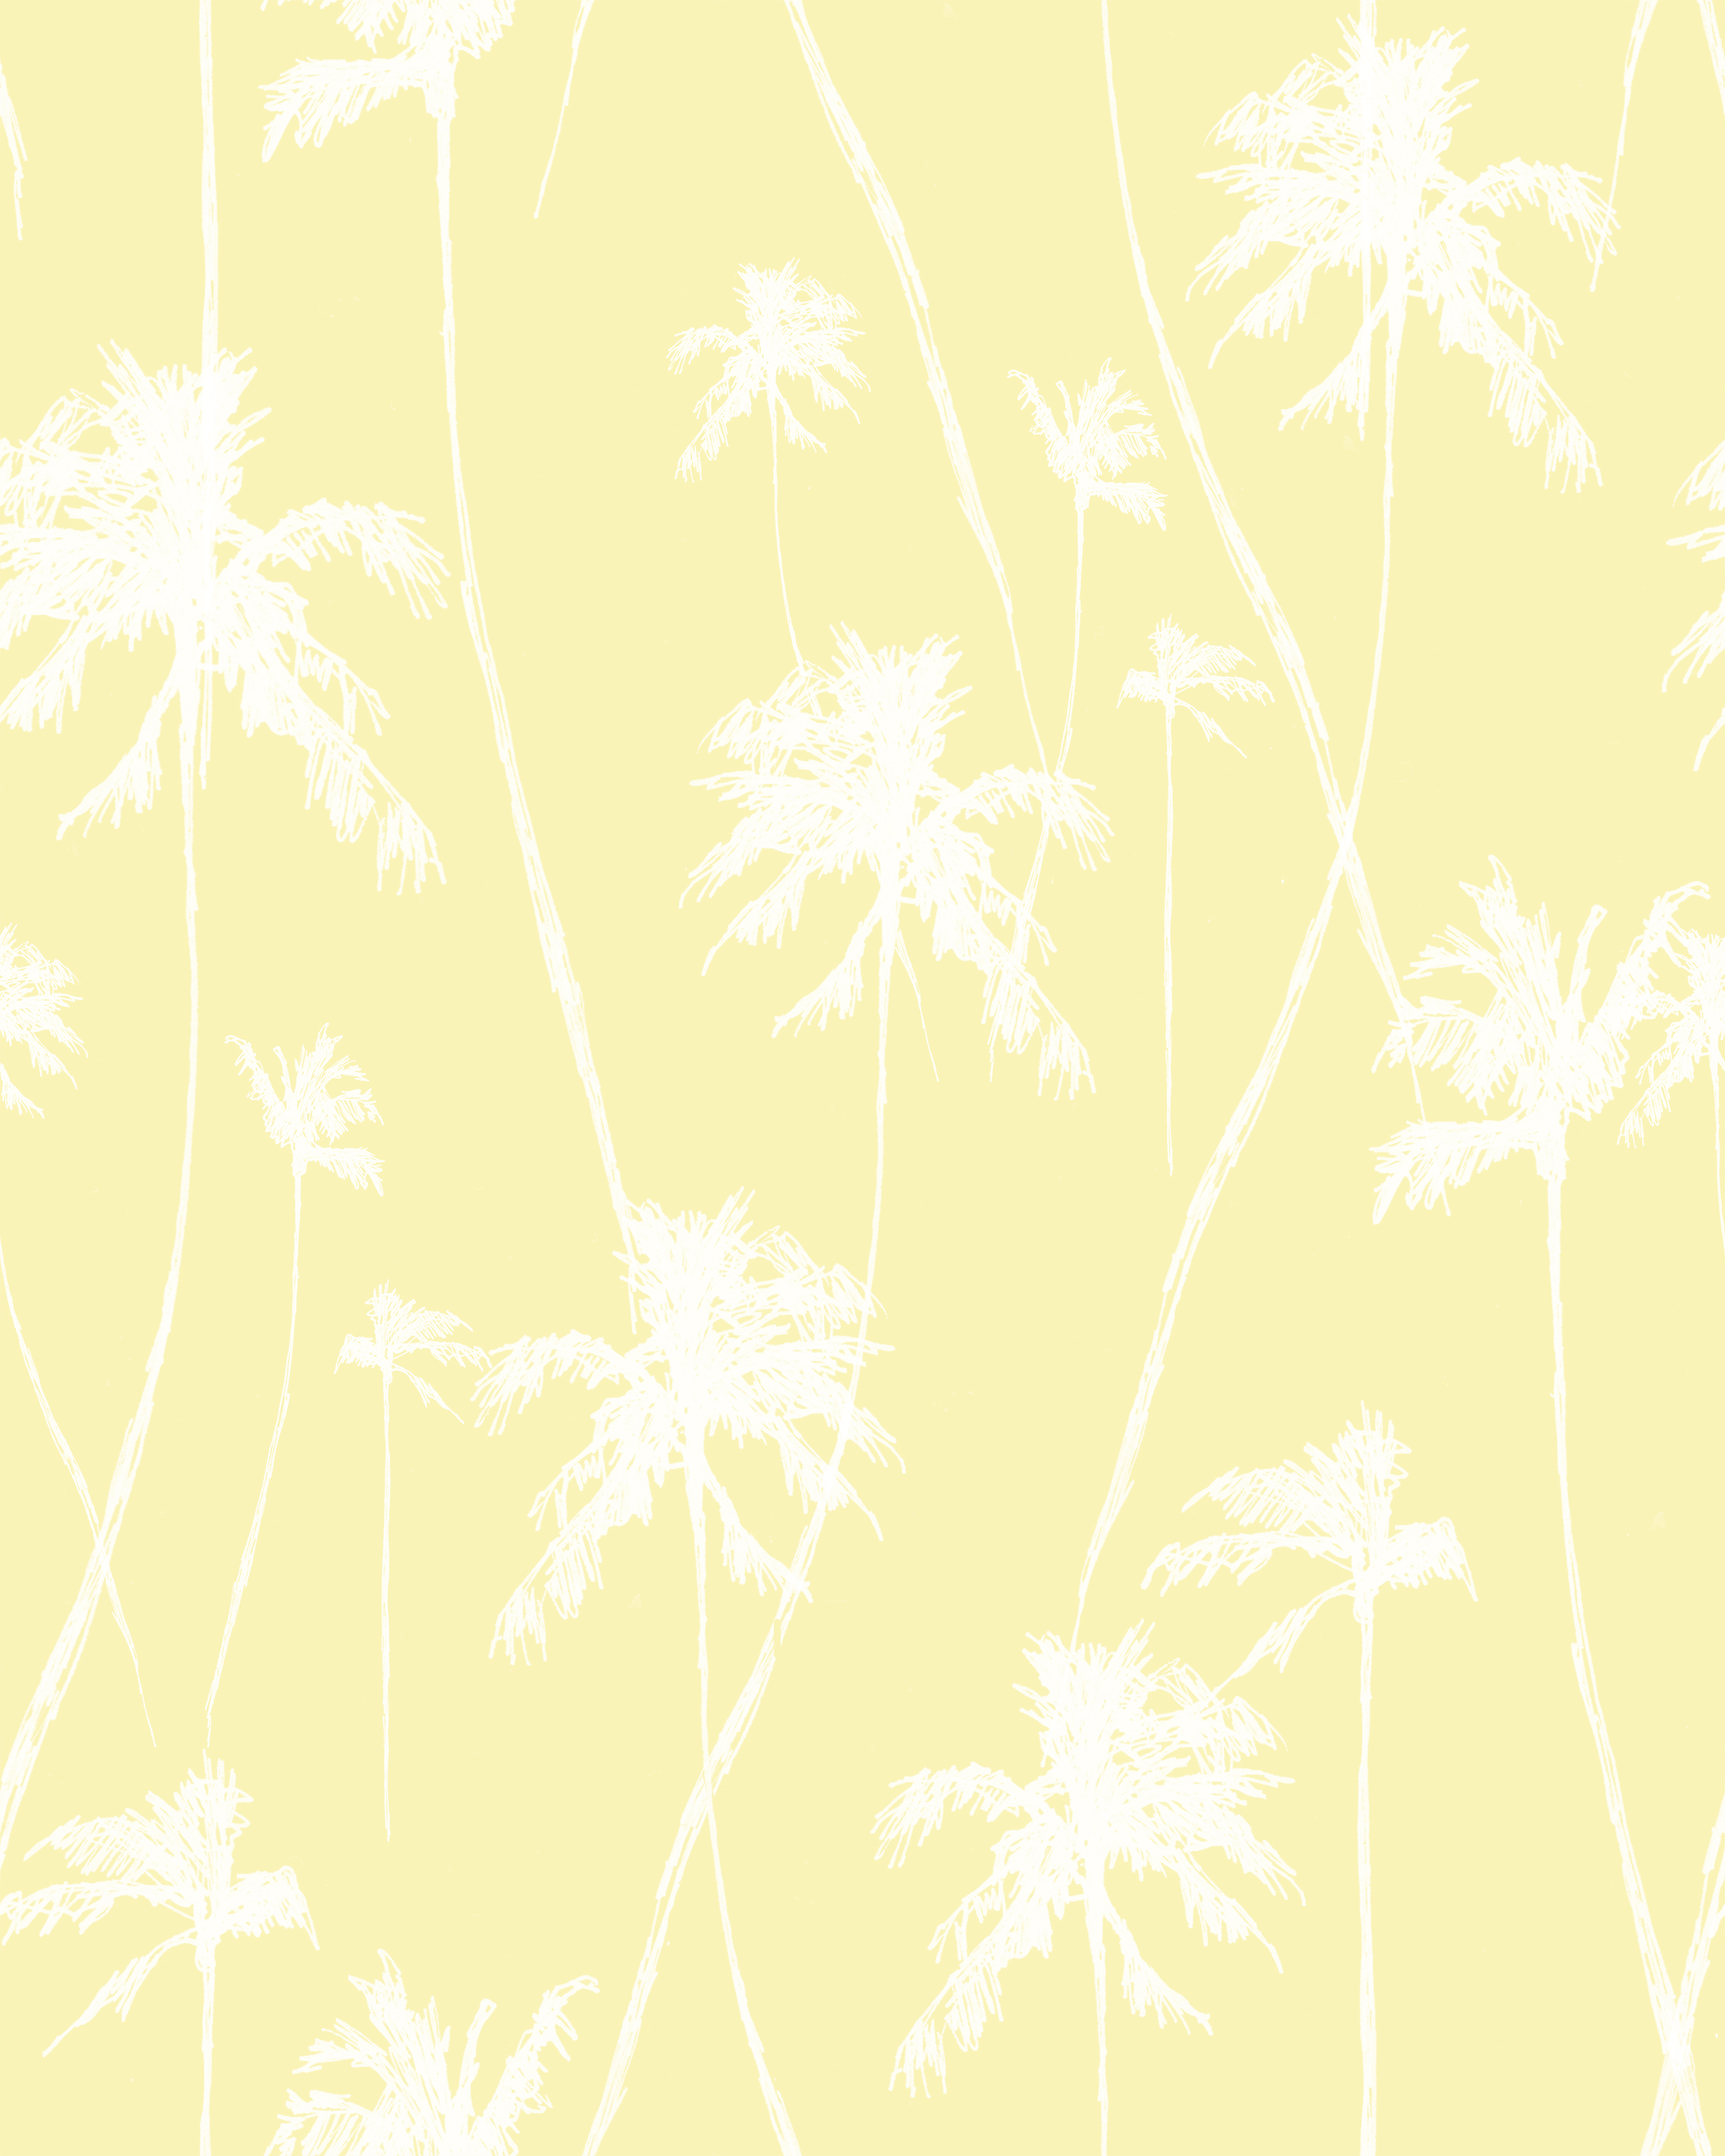 Floating Palms    Floating Palms  print is used in the sand&palm Another Land/Palm collection. It is created using sketches of the designers travels in the tropics.